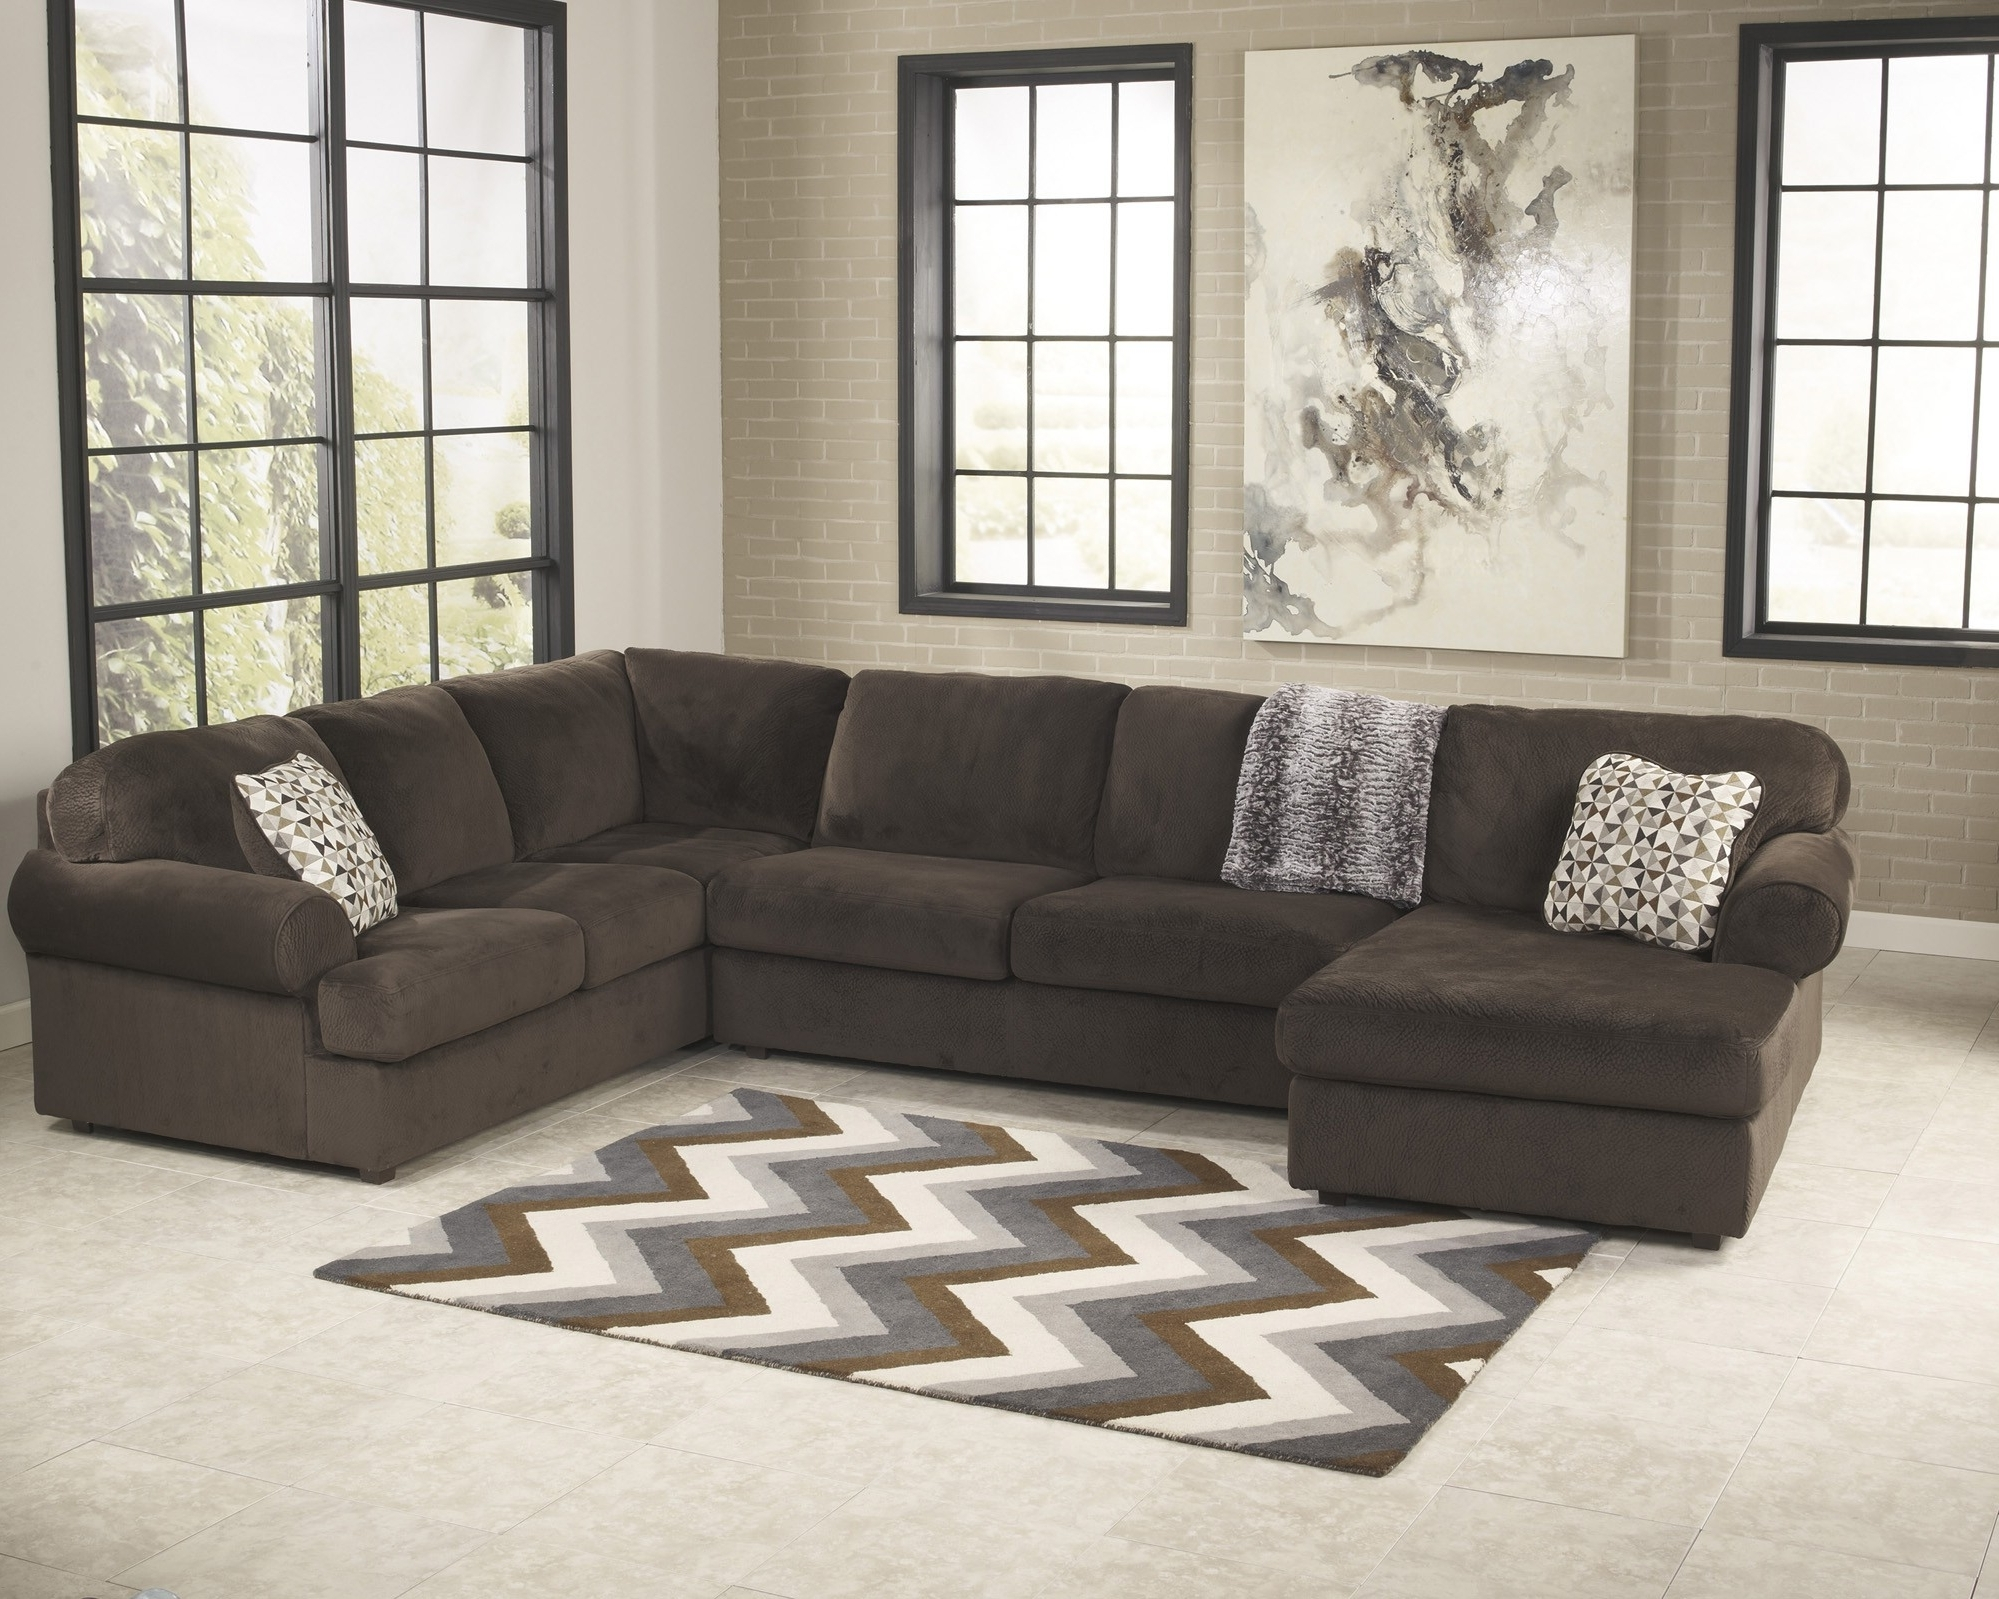 Most Popular Jessa Place Chocolate 3 Piece Sectional Sofa For $ (View 11 of 15)